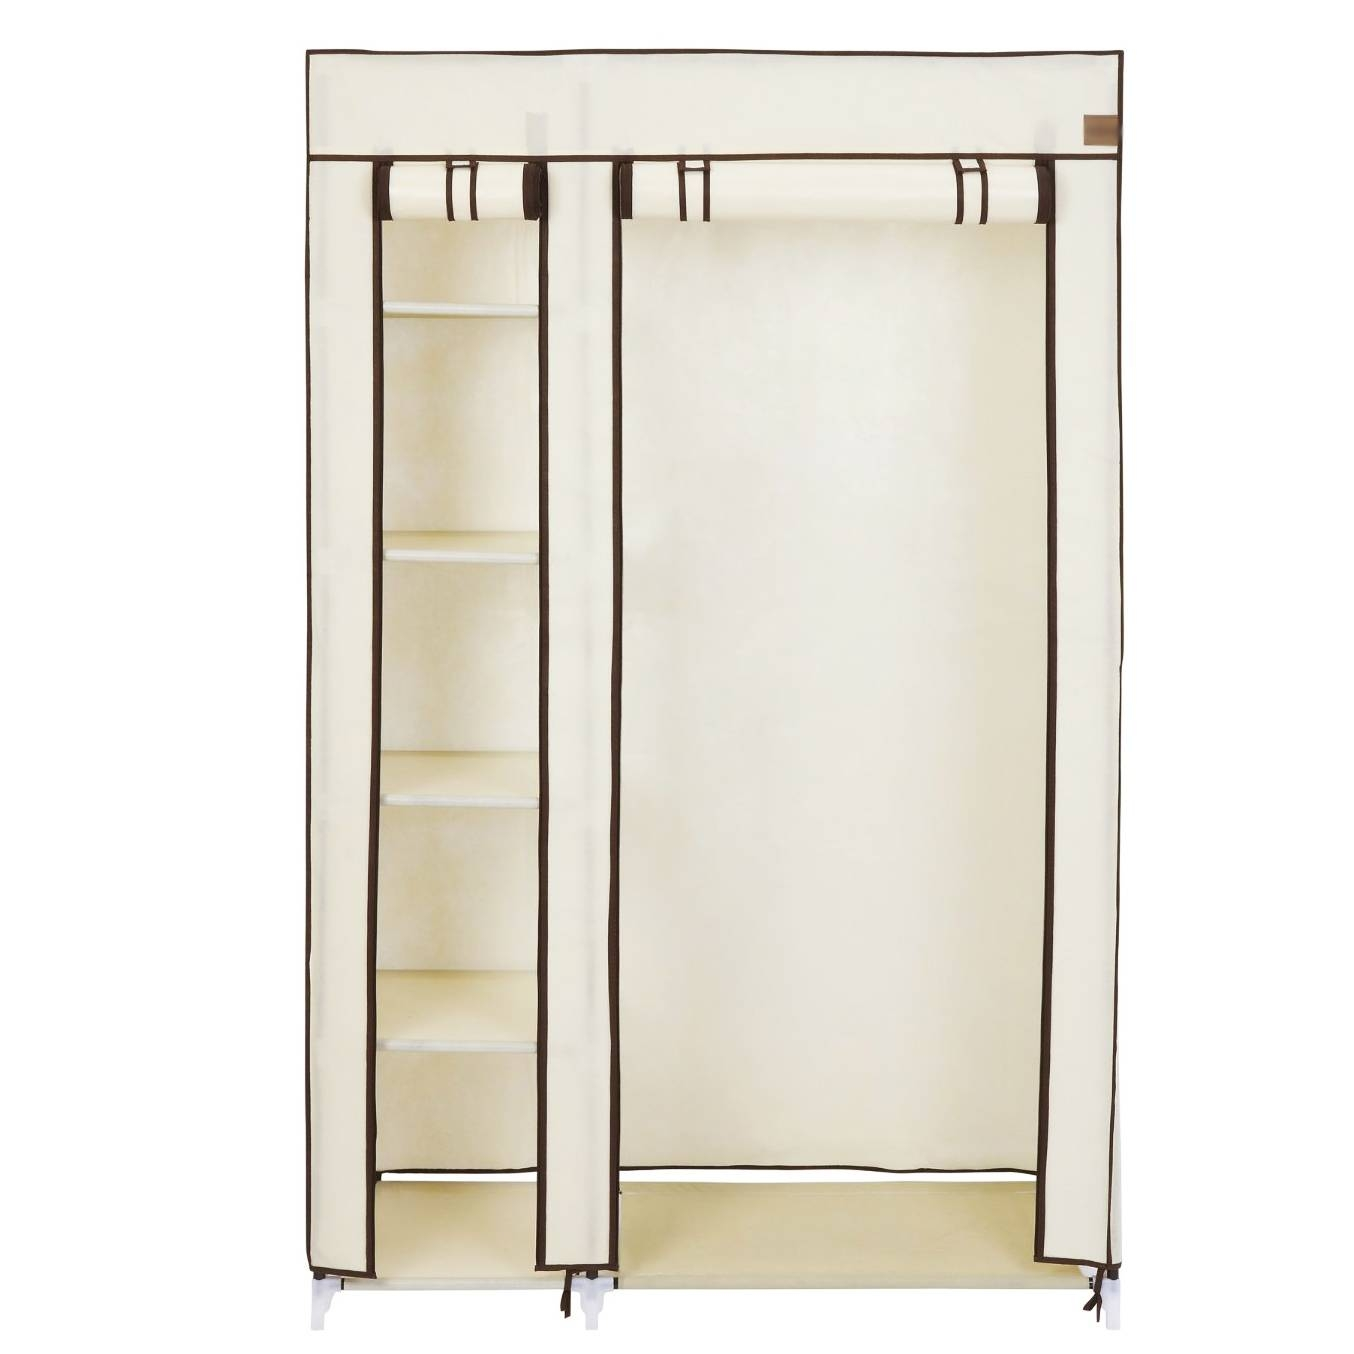 Double Cream Canvas Wardrobe Clothes Rail Hanging Storage Closet with regard to Double Rail Wardrobe (Image 11 of 30)